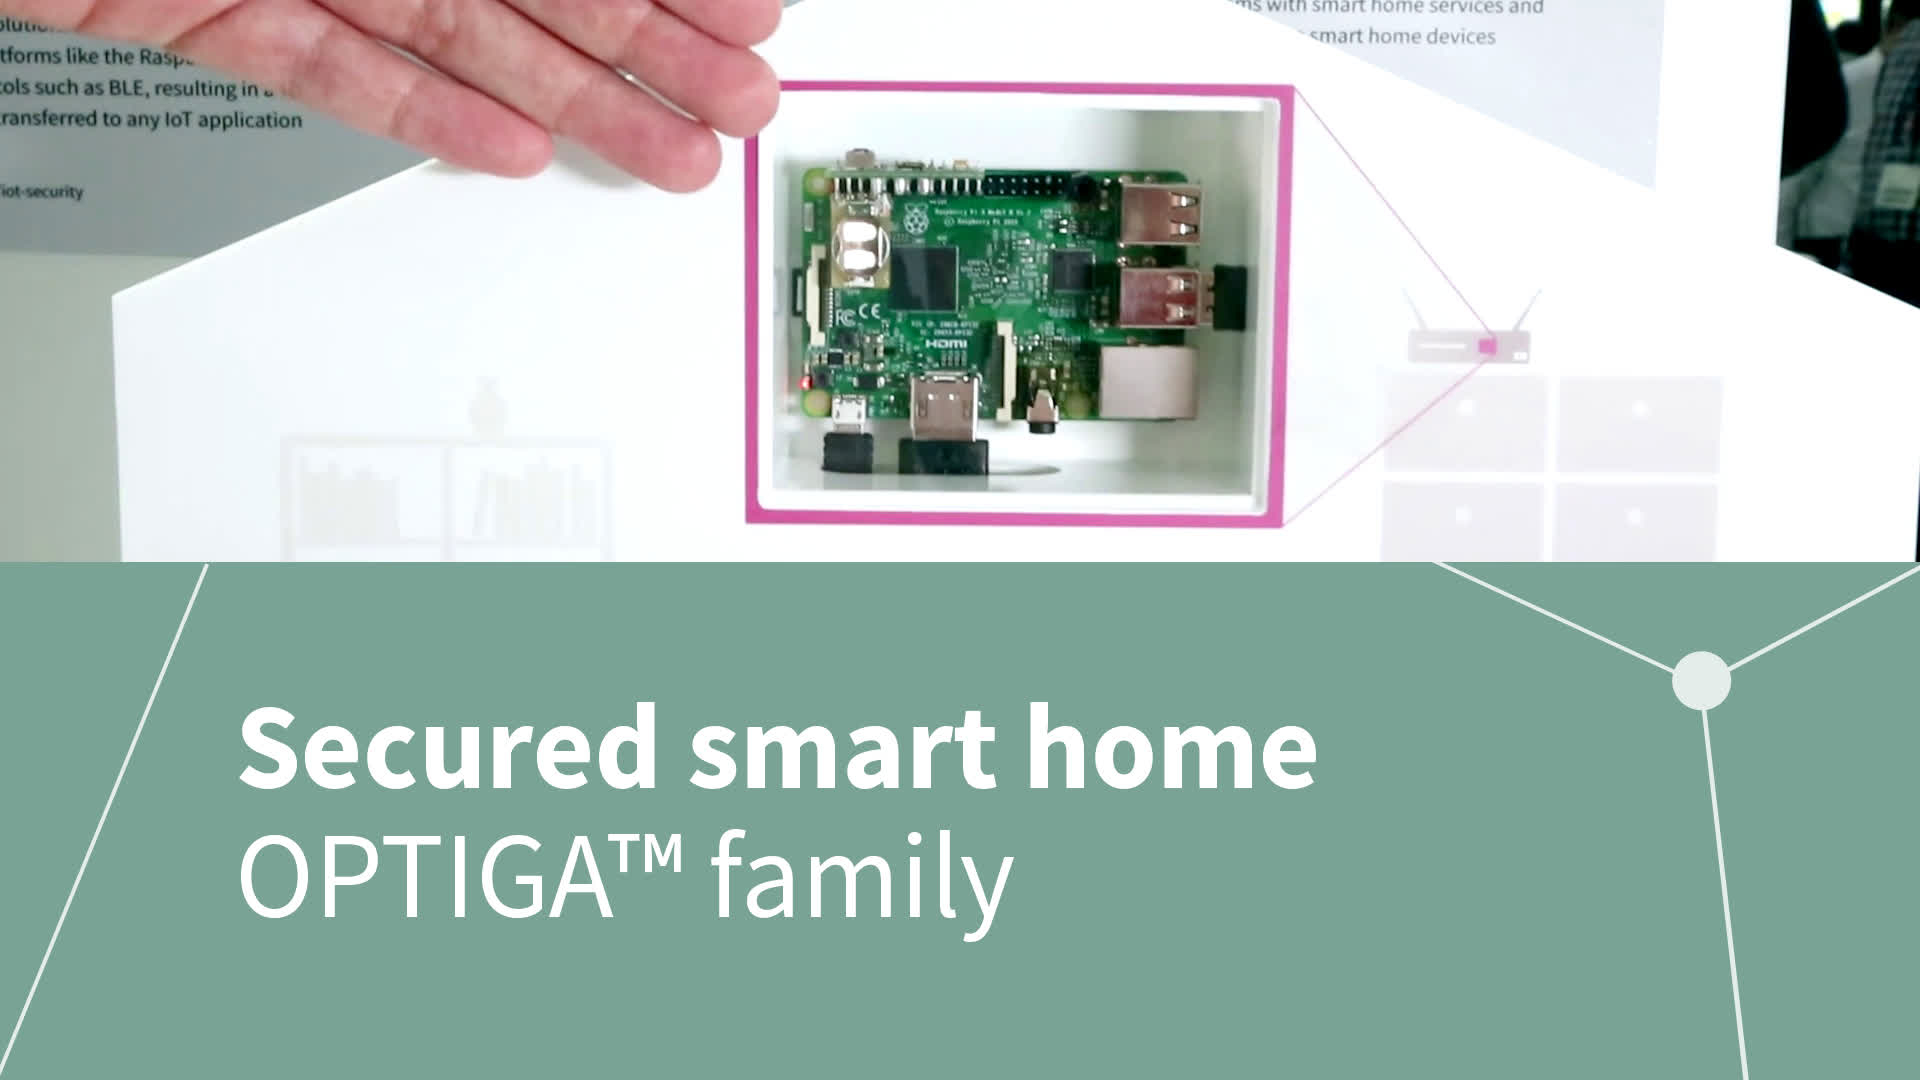 electronica 2016 - Secured smart home architecture